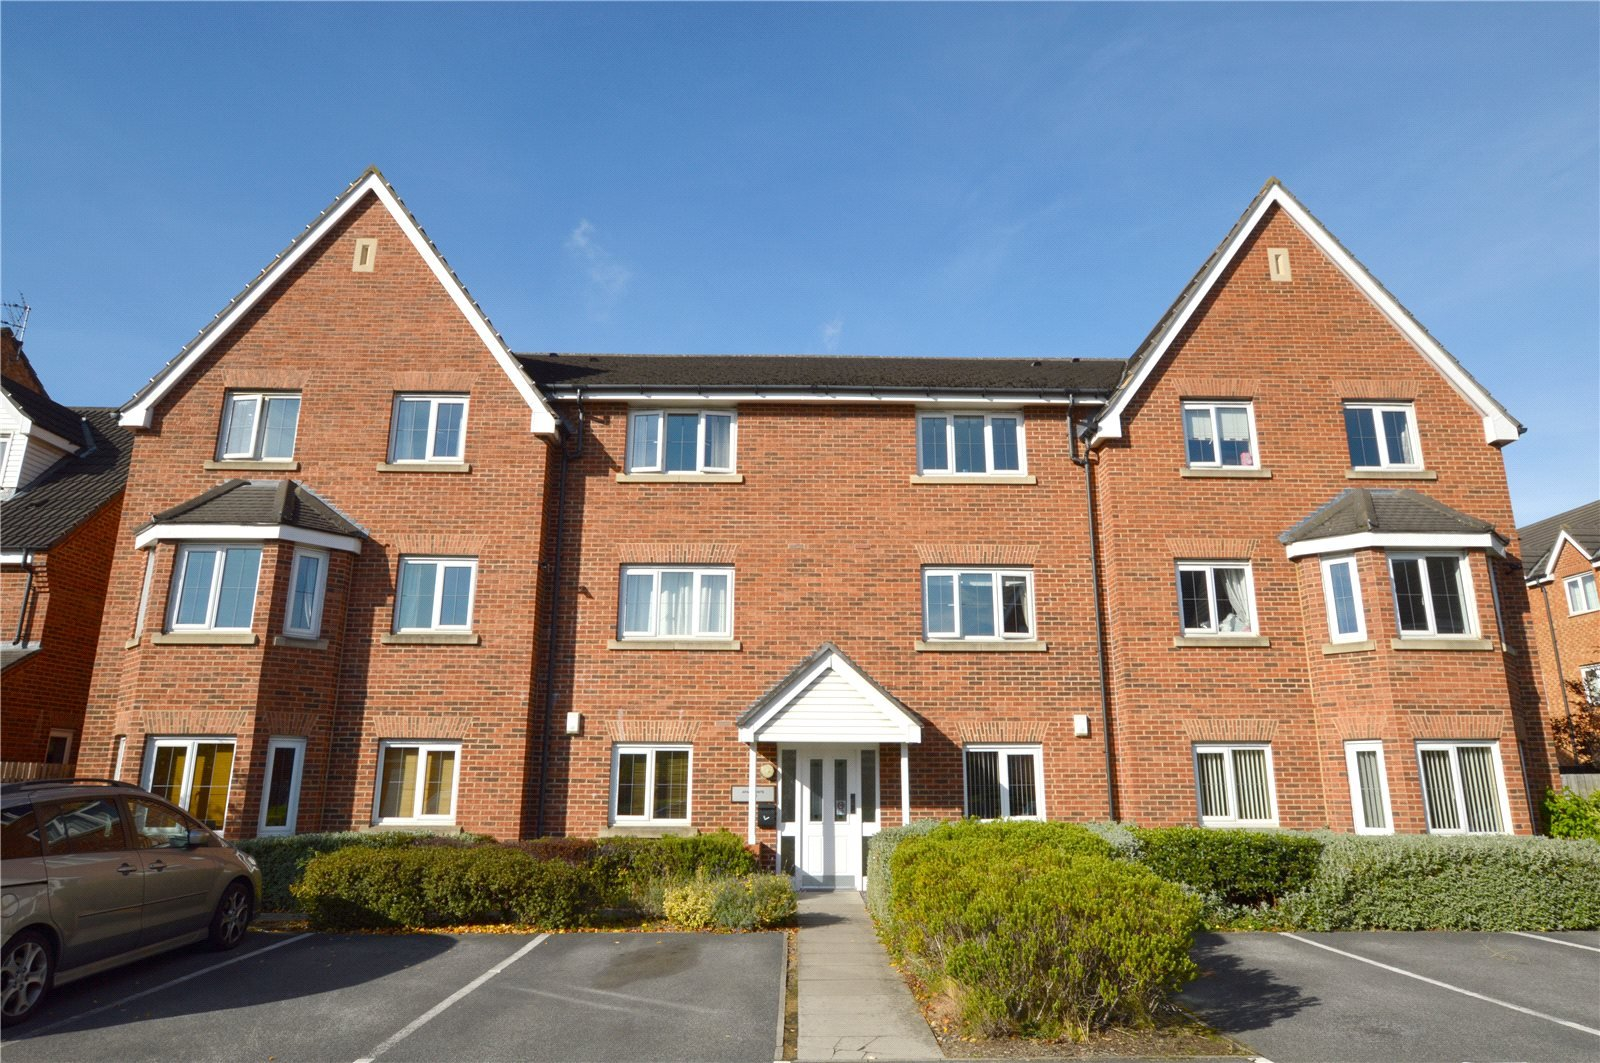 Property for sale in Pudsey, exterior three floor apartment building